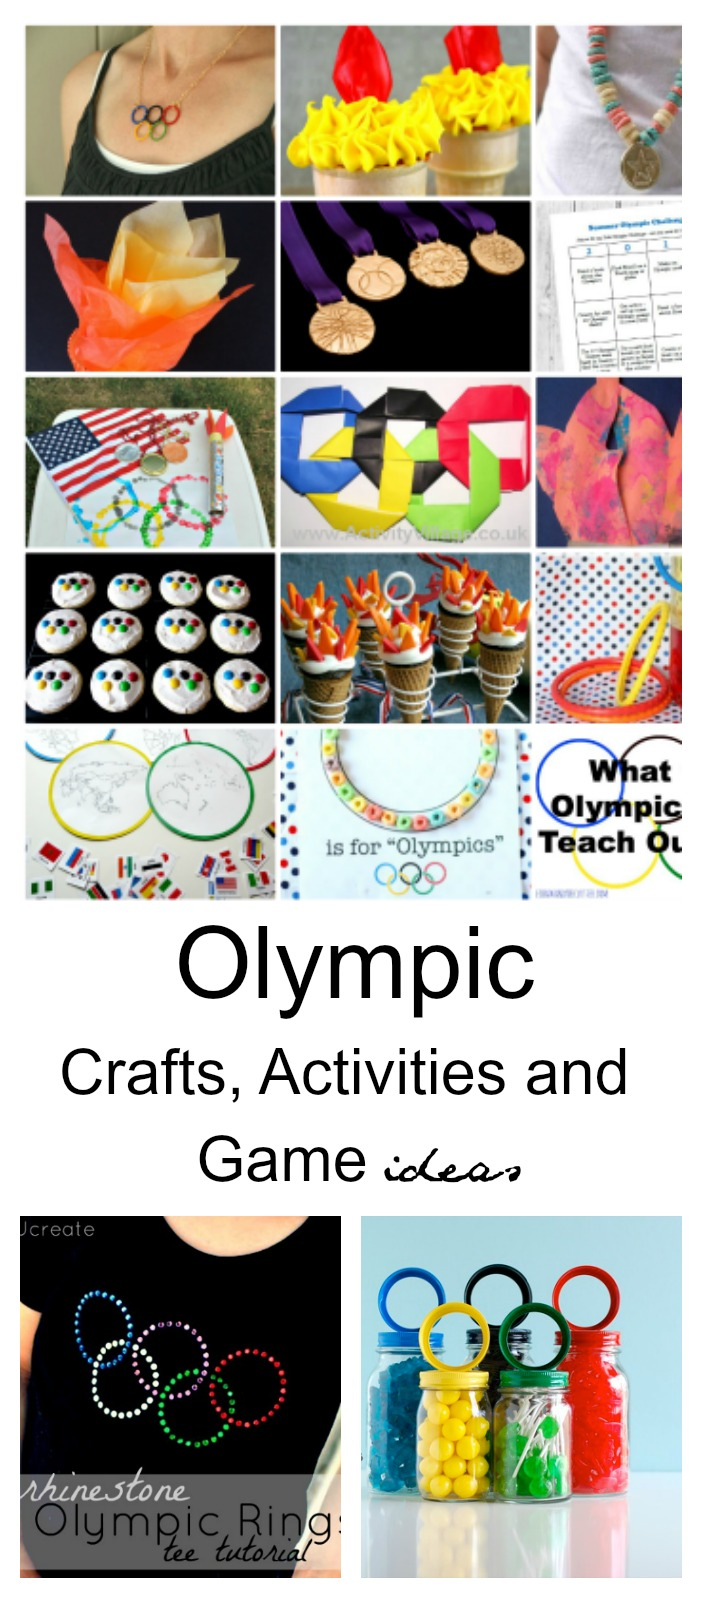 Olympic-Crafts-Activities-Game-Ideas-Pin